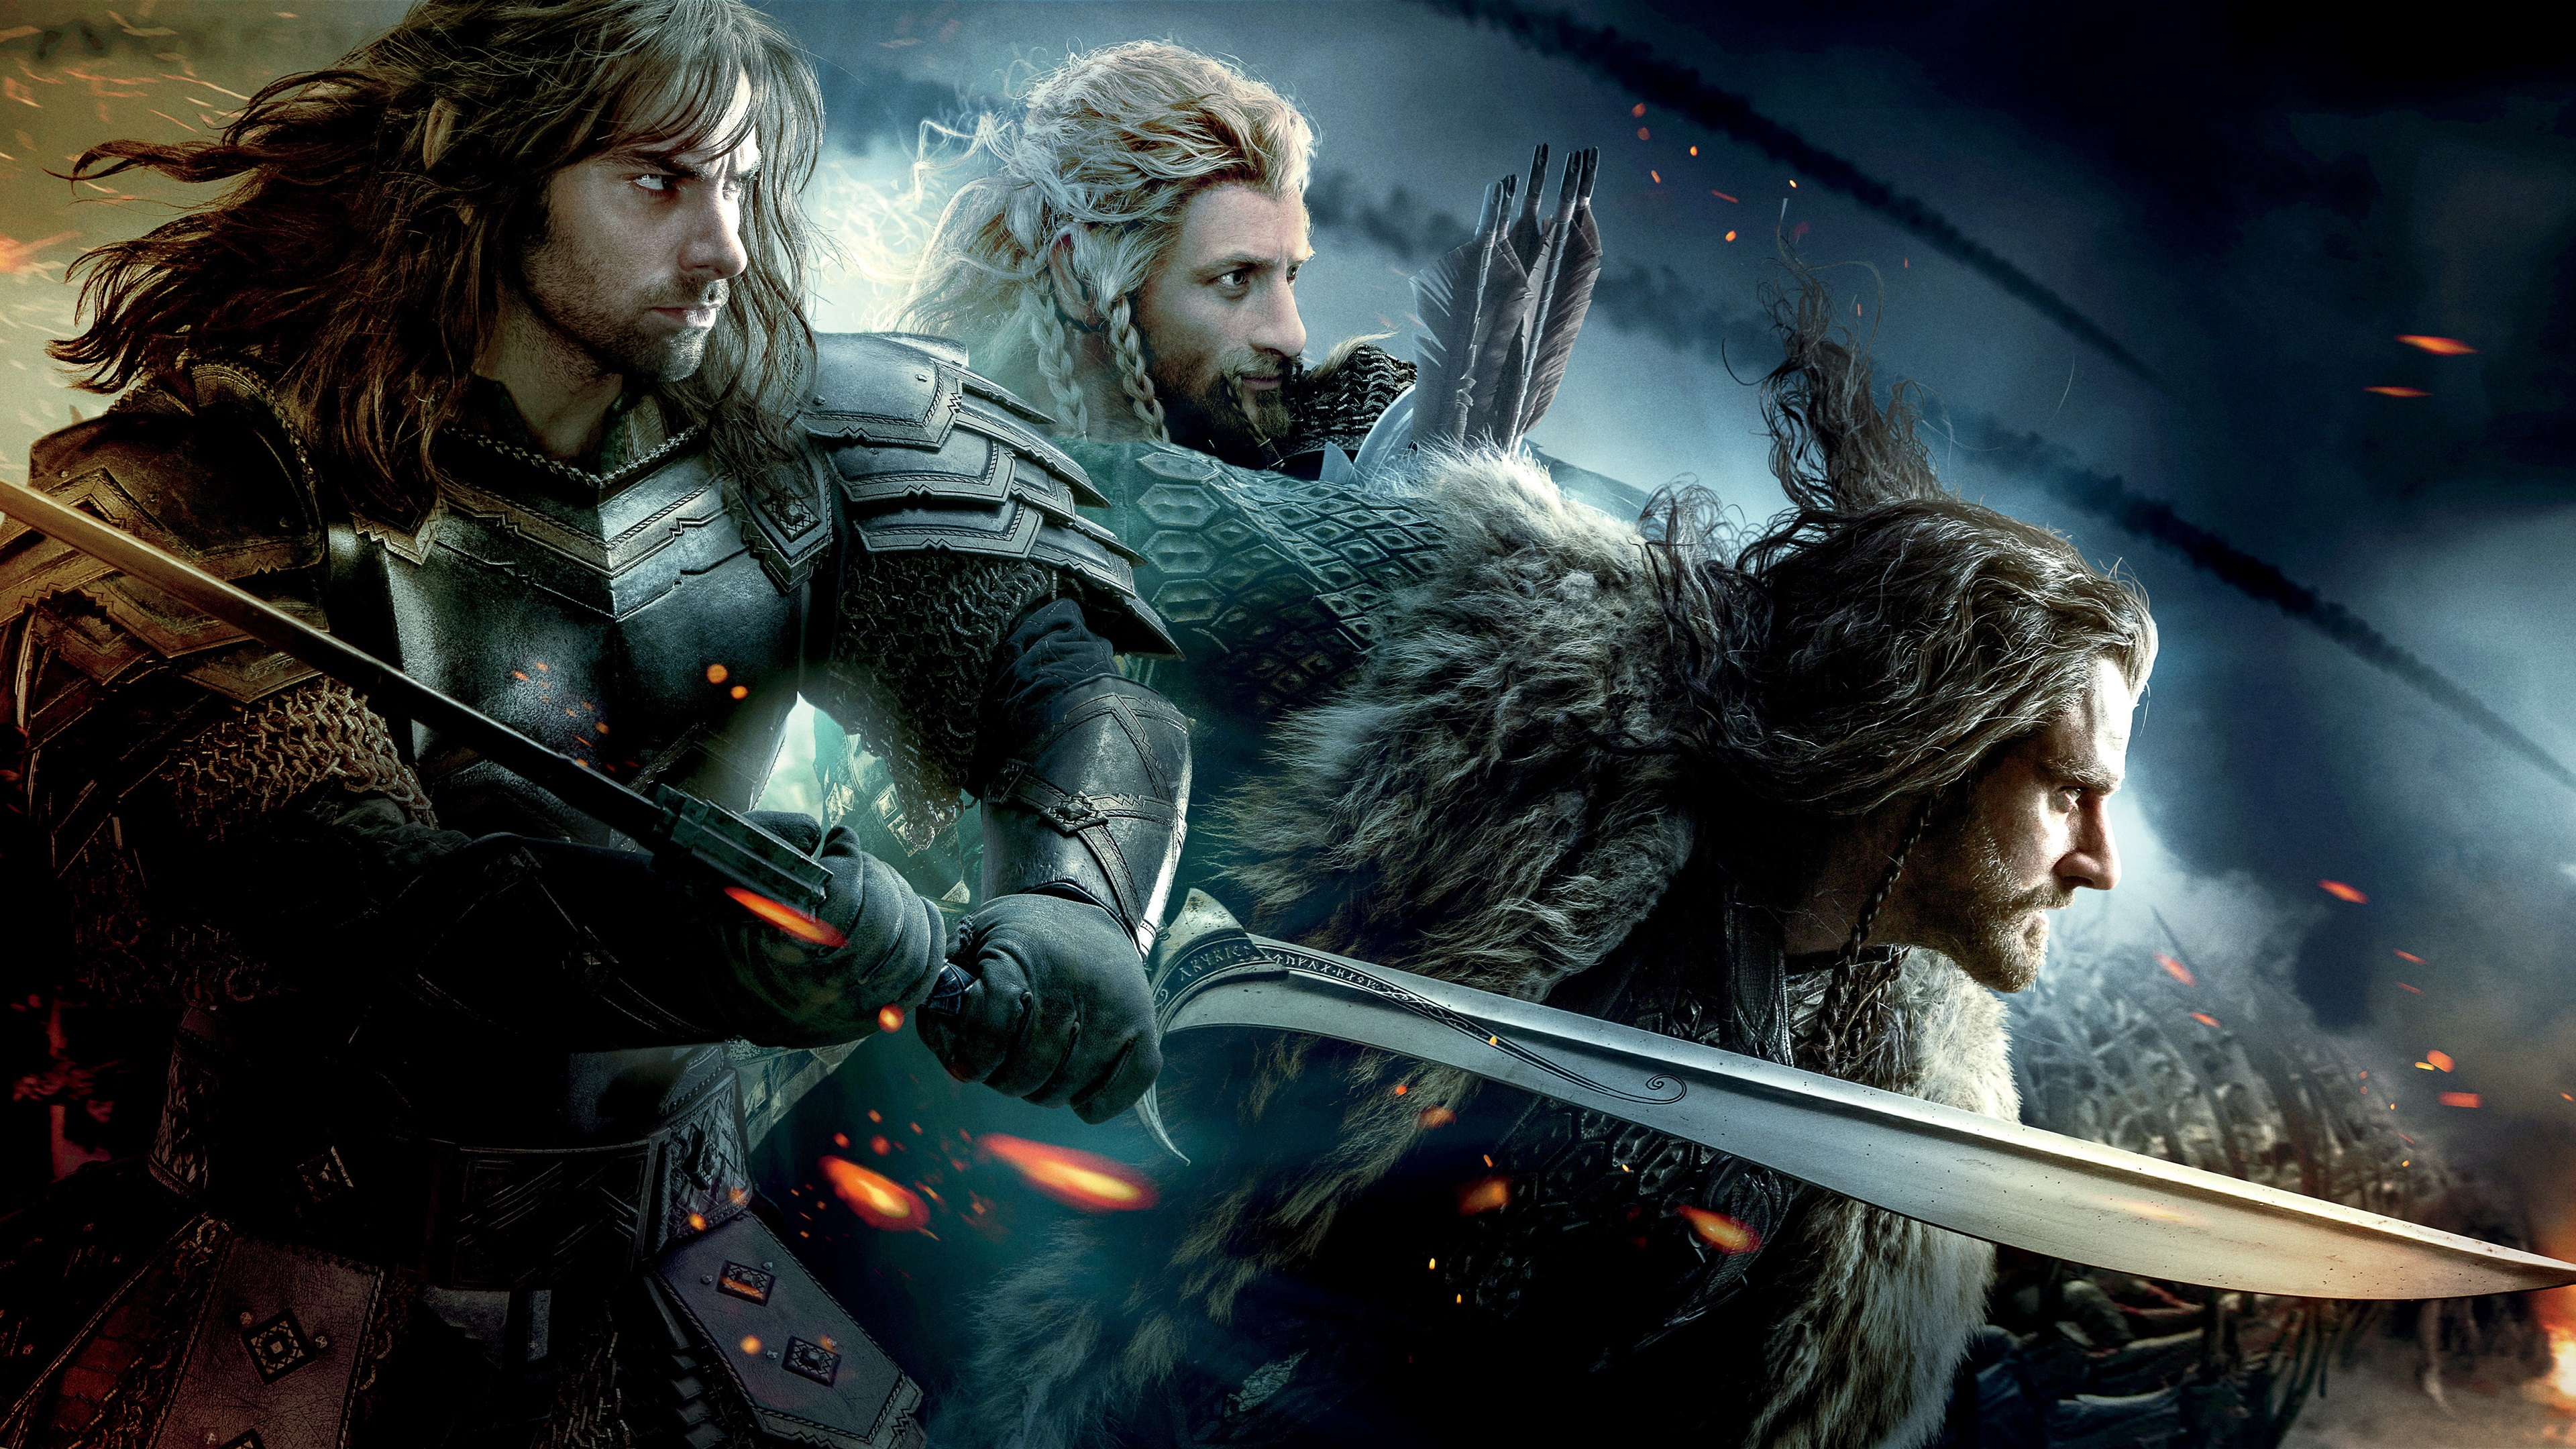 The-Hobbit-An-Unexpected-Journey-magical-movie_3840x2160